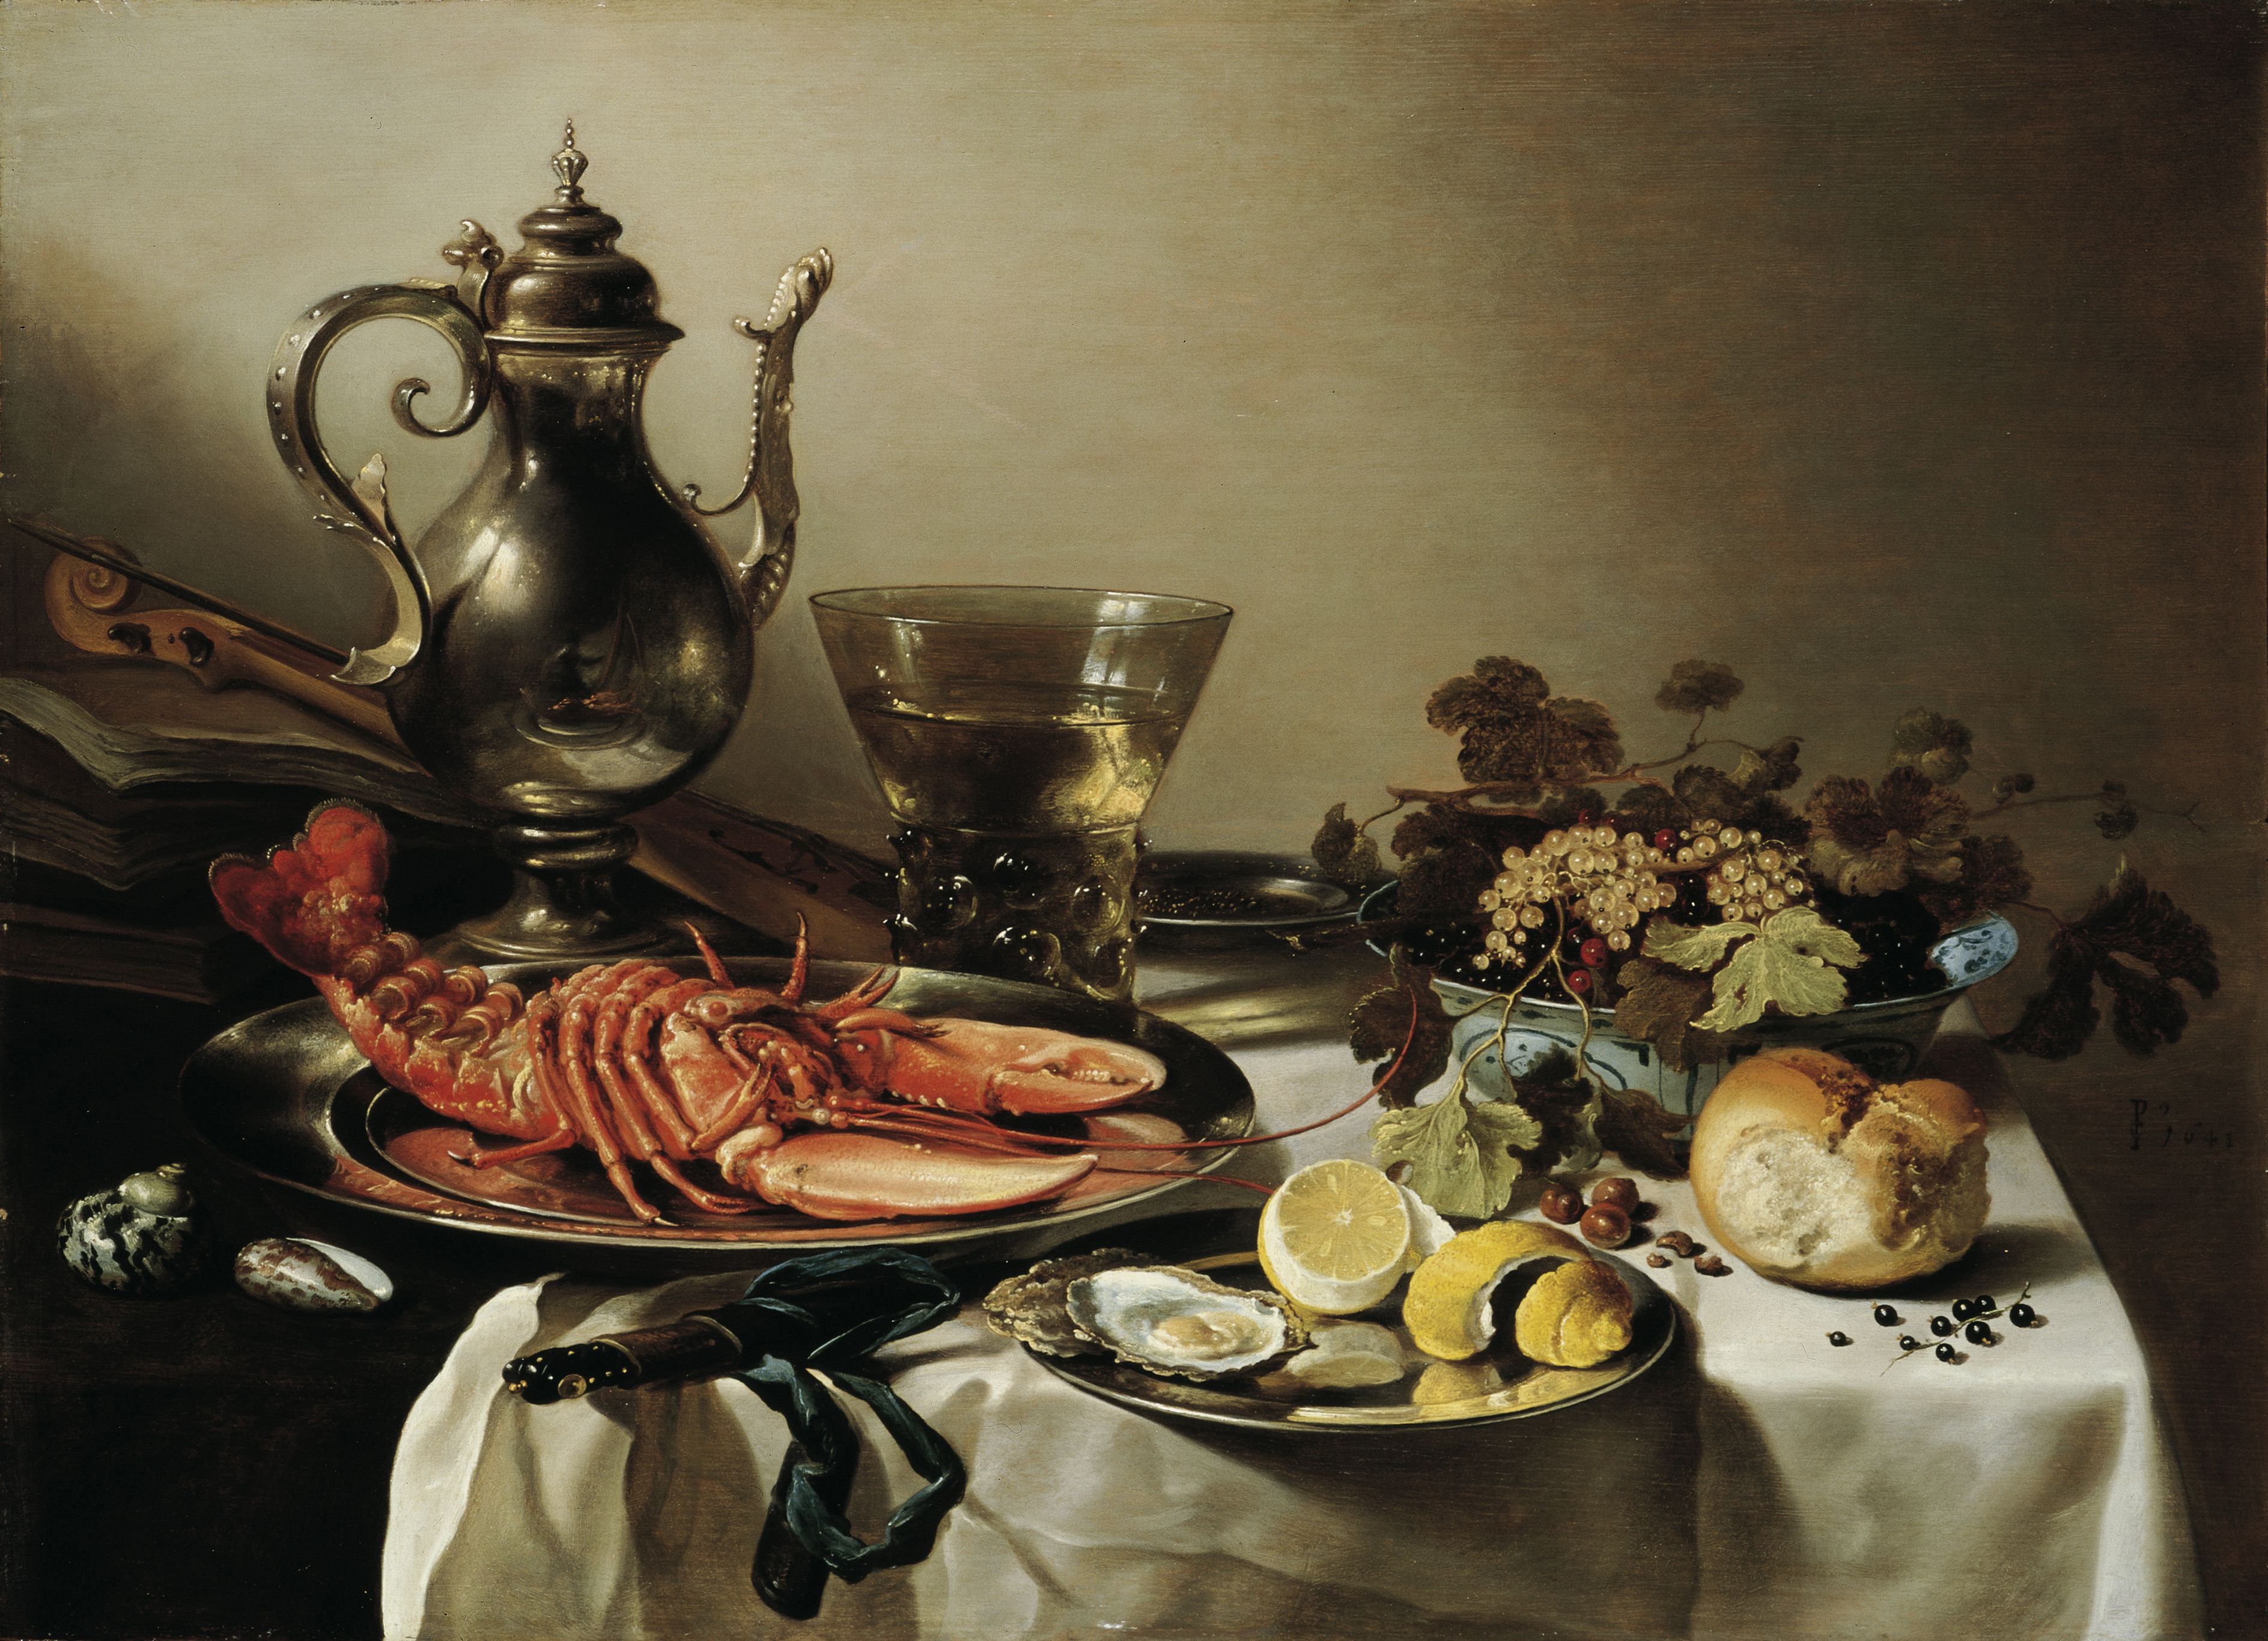 Pieter Claesz Wikipedia, the free encyclopedia Vanitas